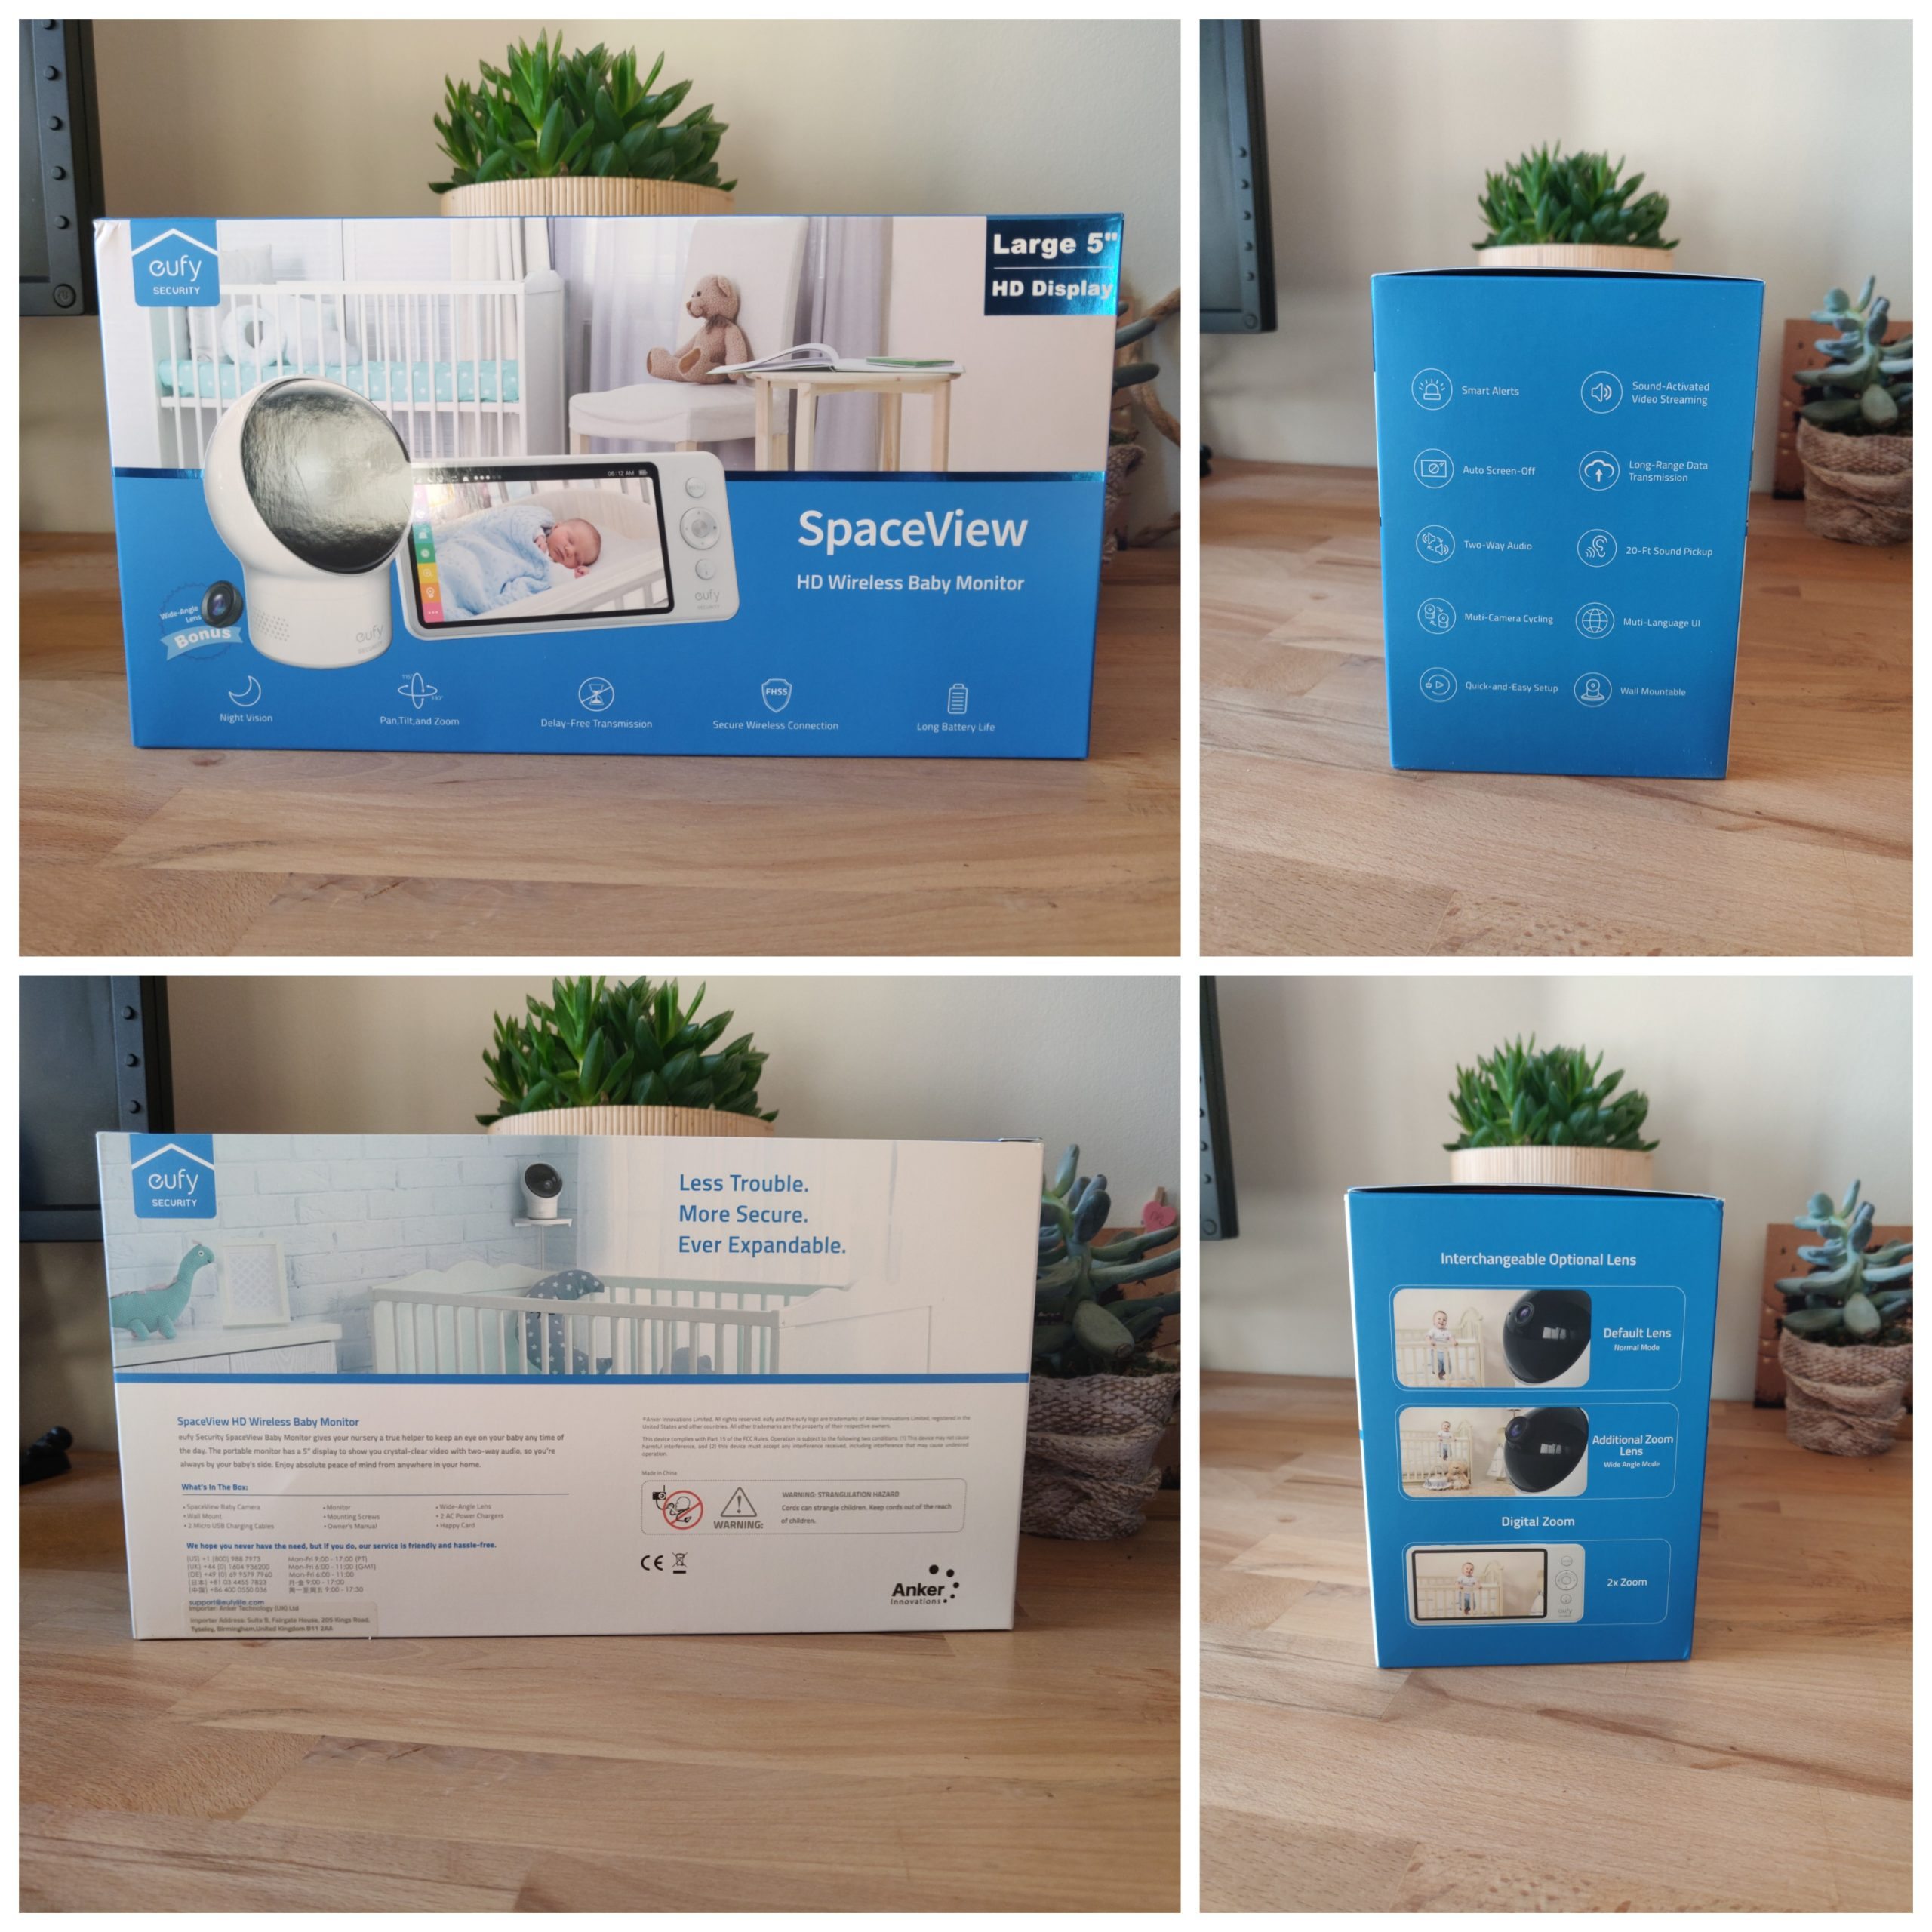 Eufy Baby Monitor Spaceview unboxing